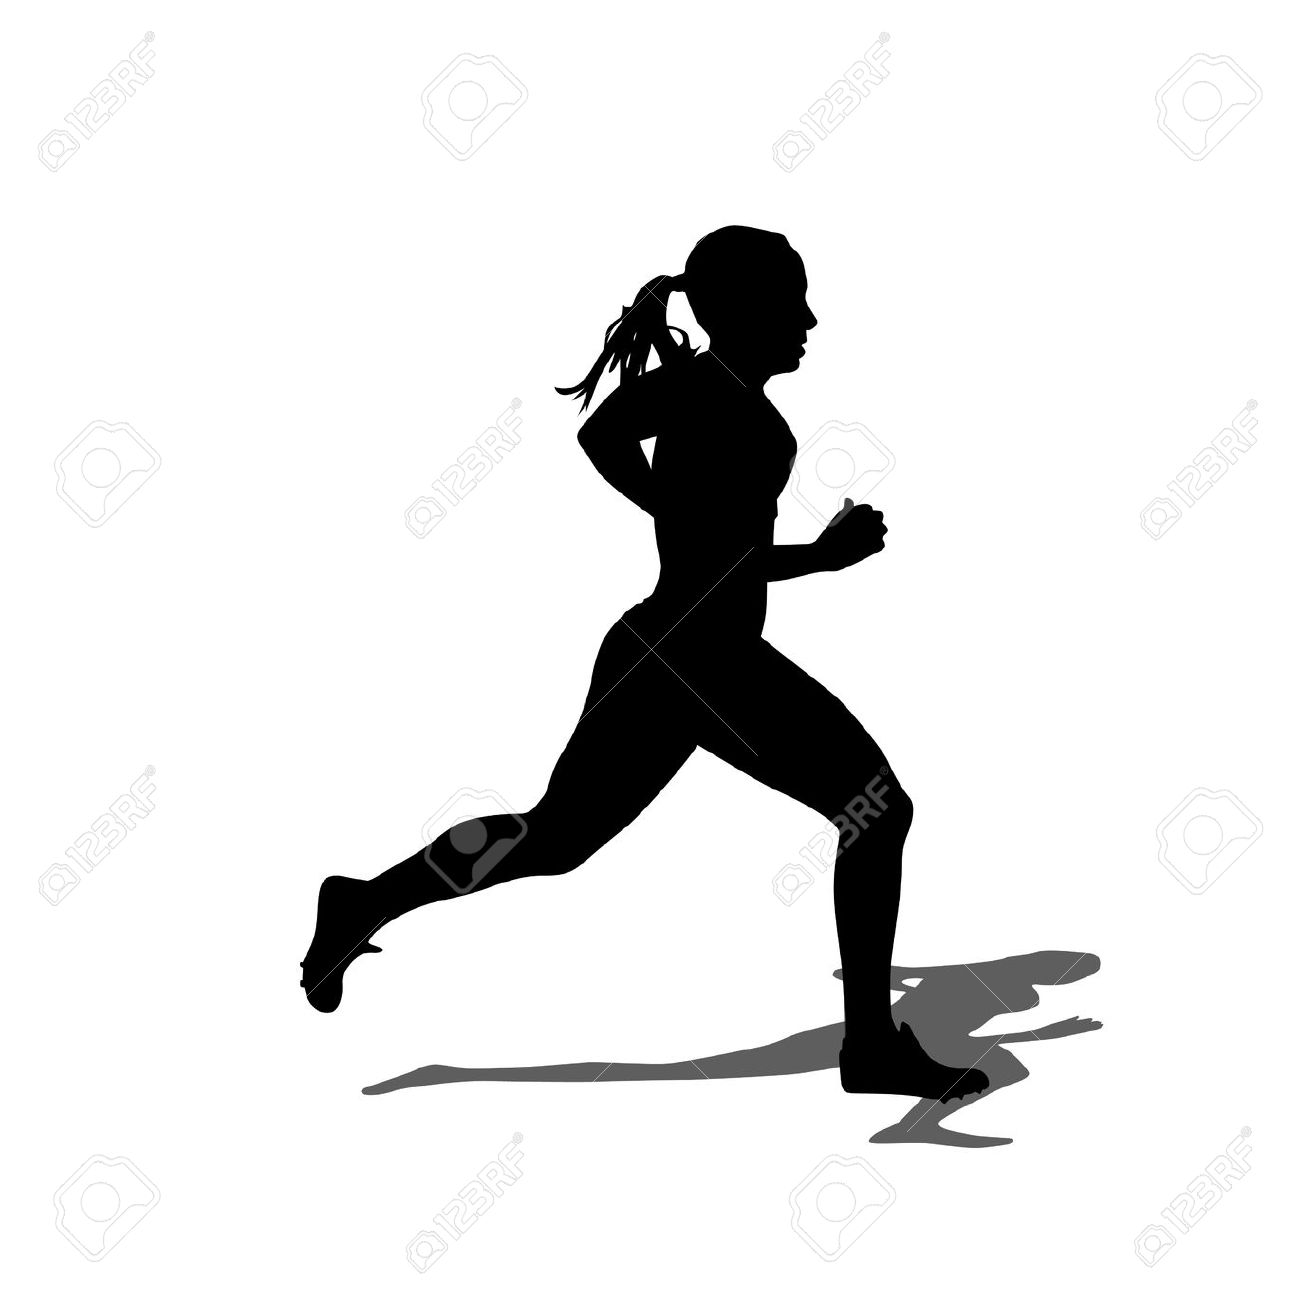 Female Marathon Runner Clipart.